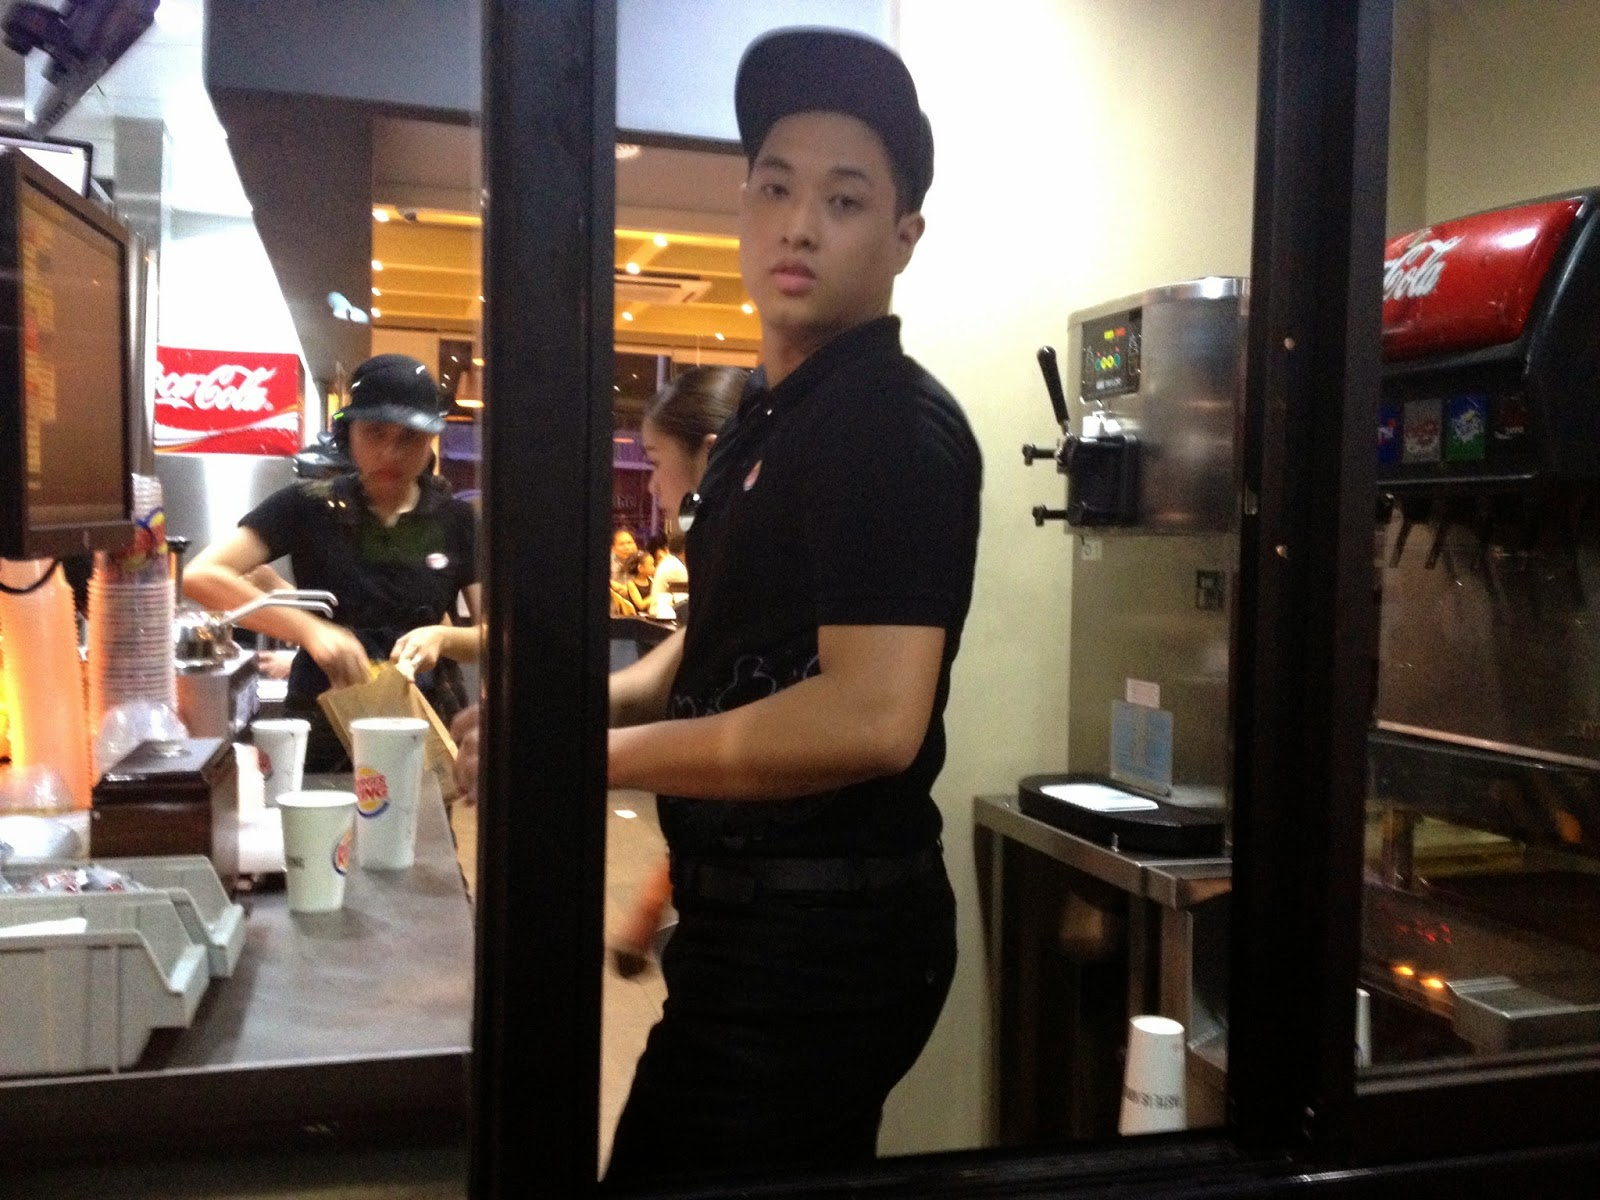 Cute Burger King Cebu Attendant